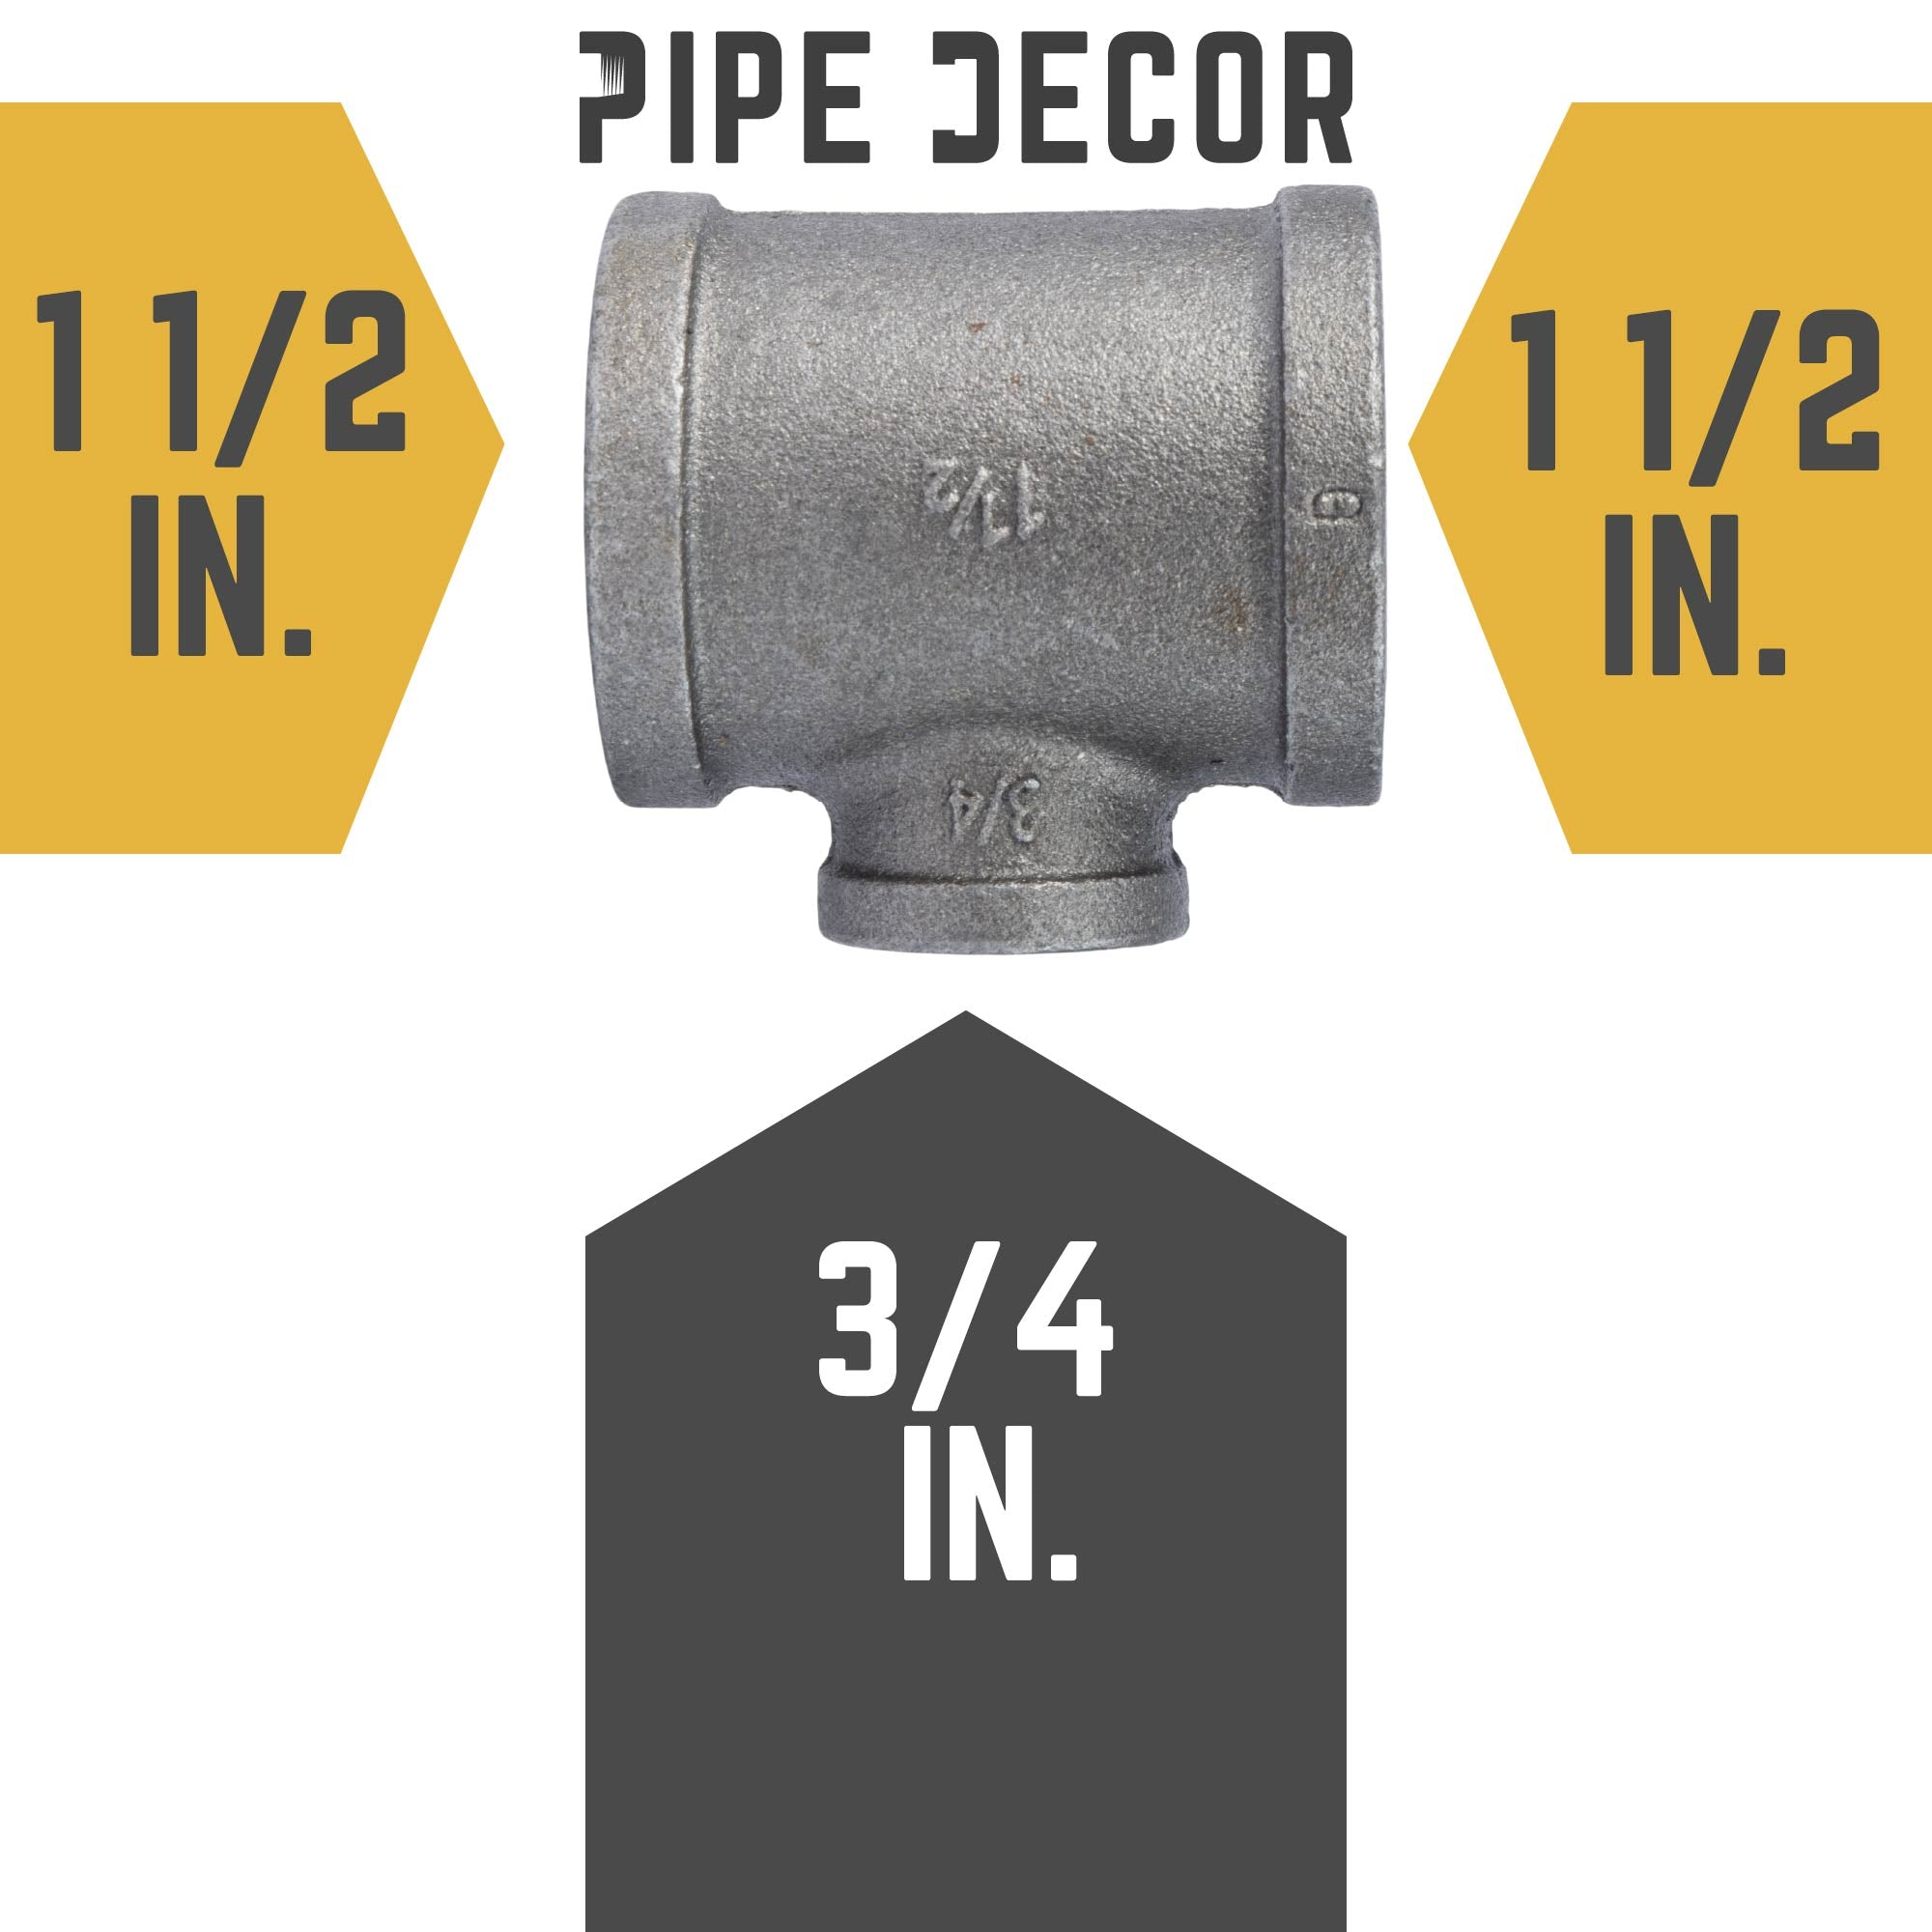 1 1/2 in. X 1 1/2 in.  X 3/4 in. Black Tee - Pipe Decor